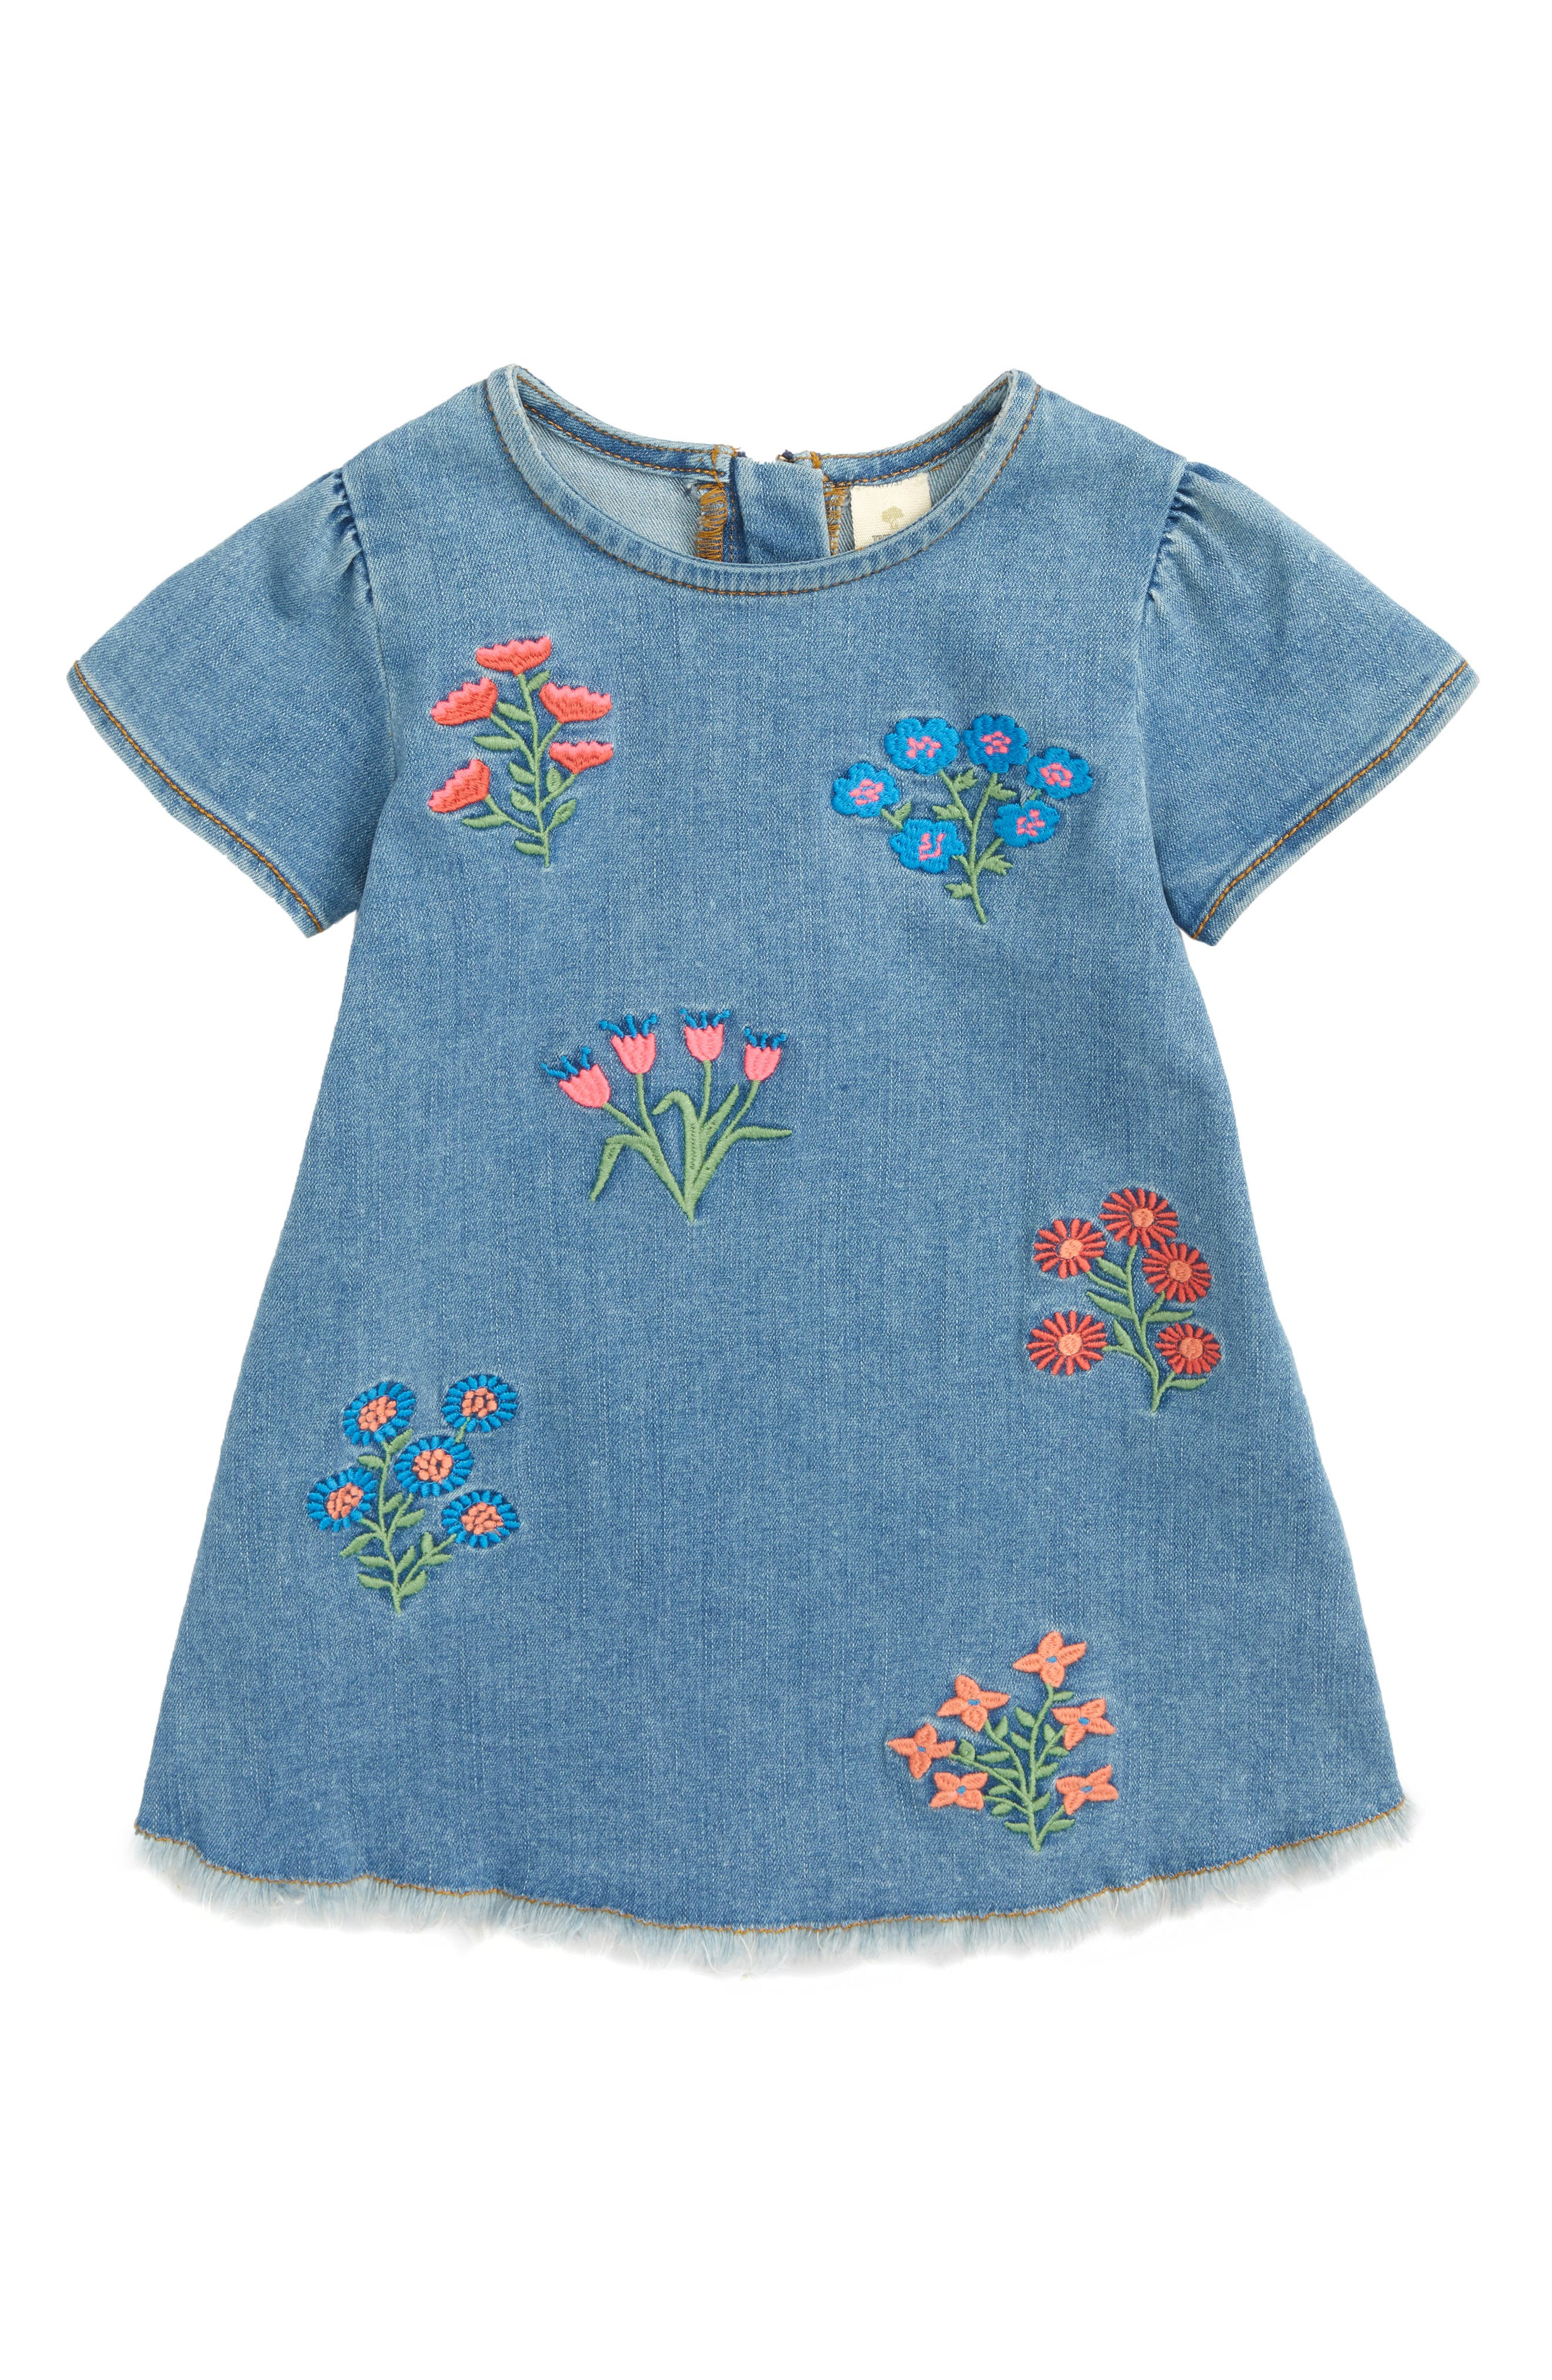 Embroidered Denim Dress,                             Main thumbnail 1, color,                             420